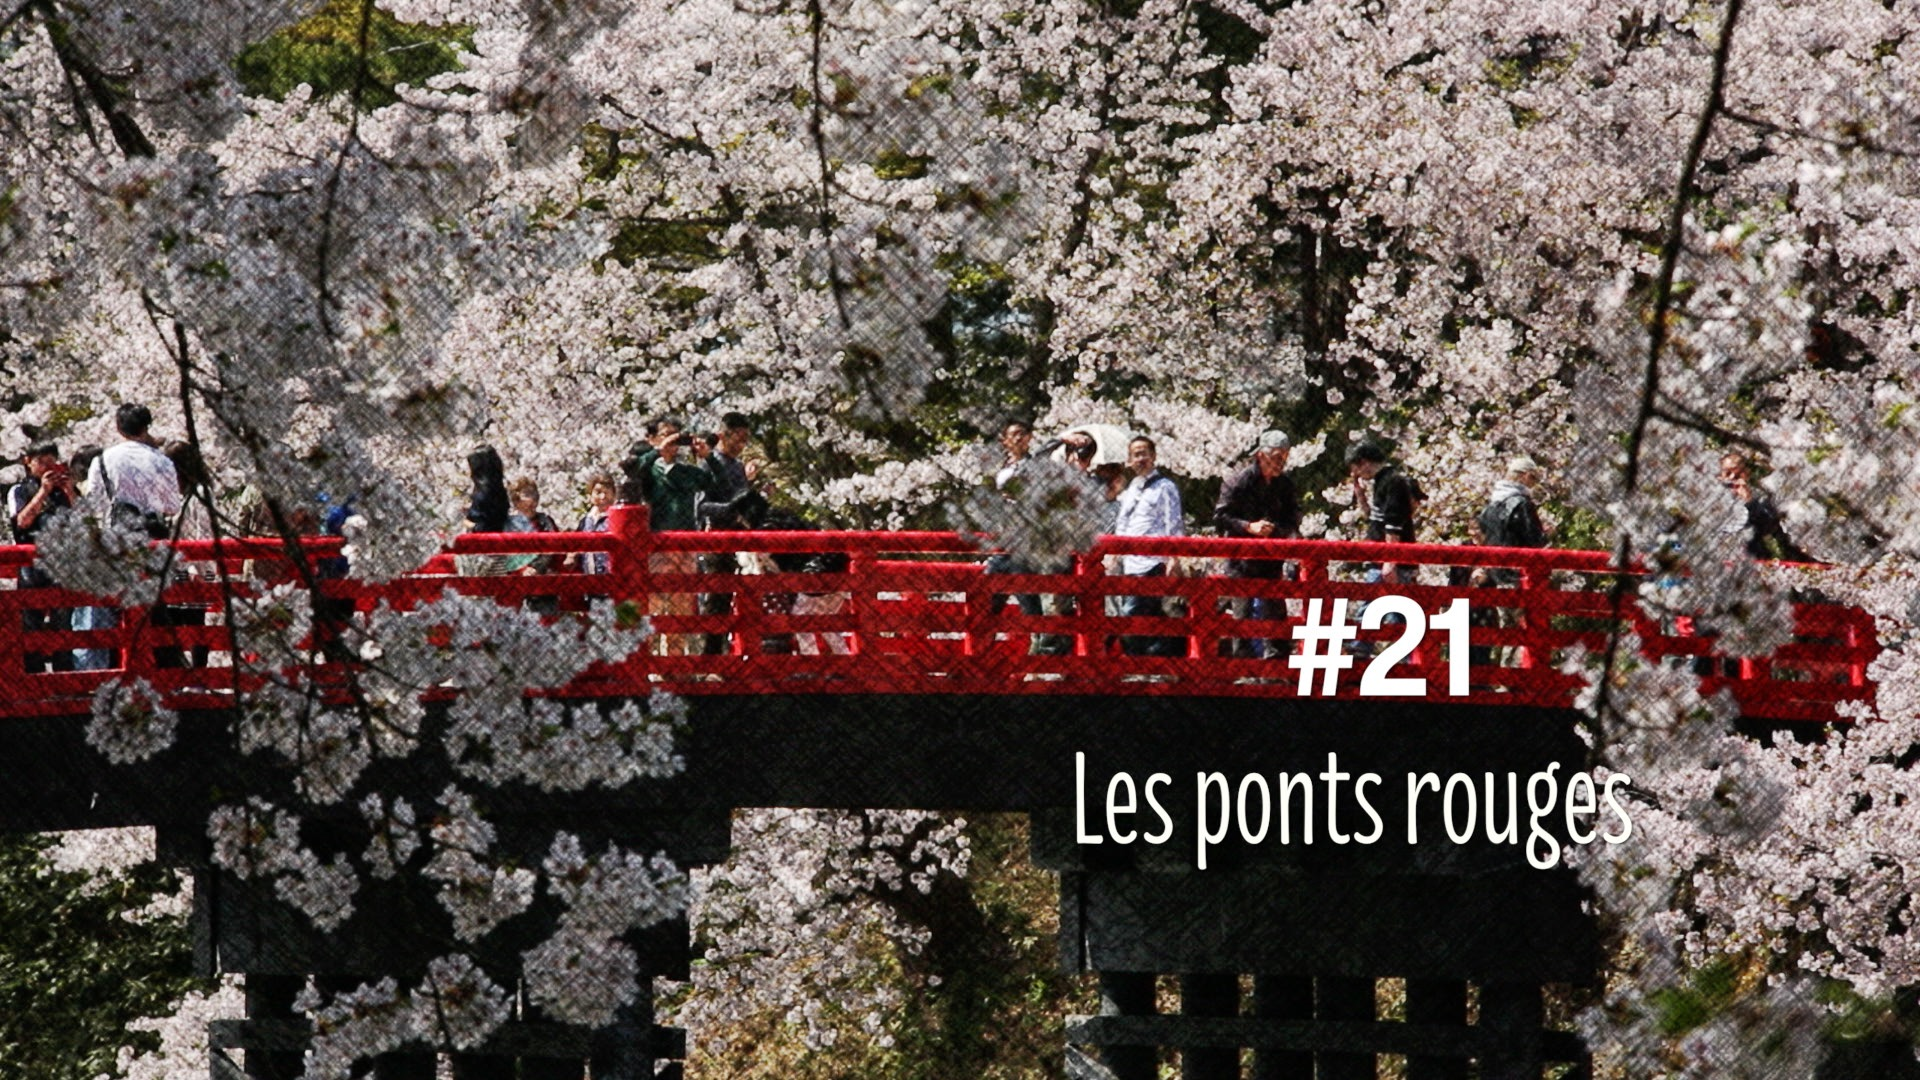 Les ponts rouges au Japon (#21)